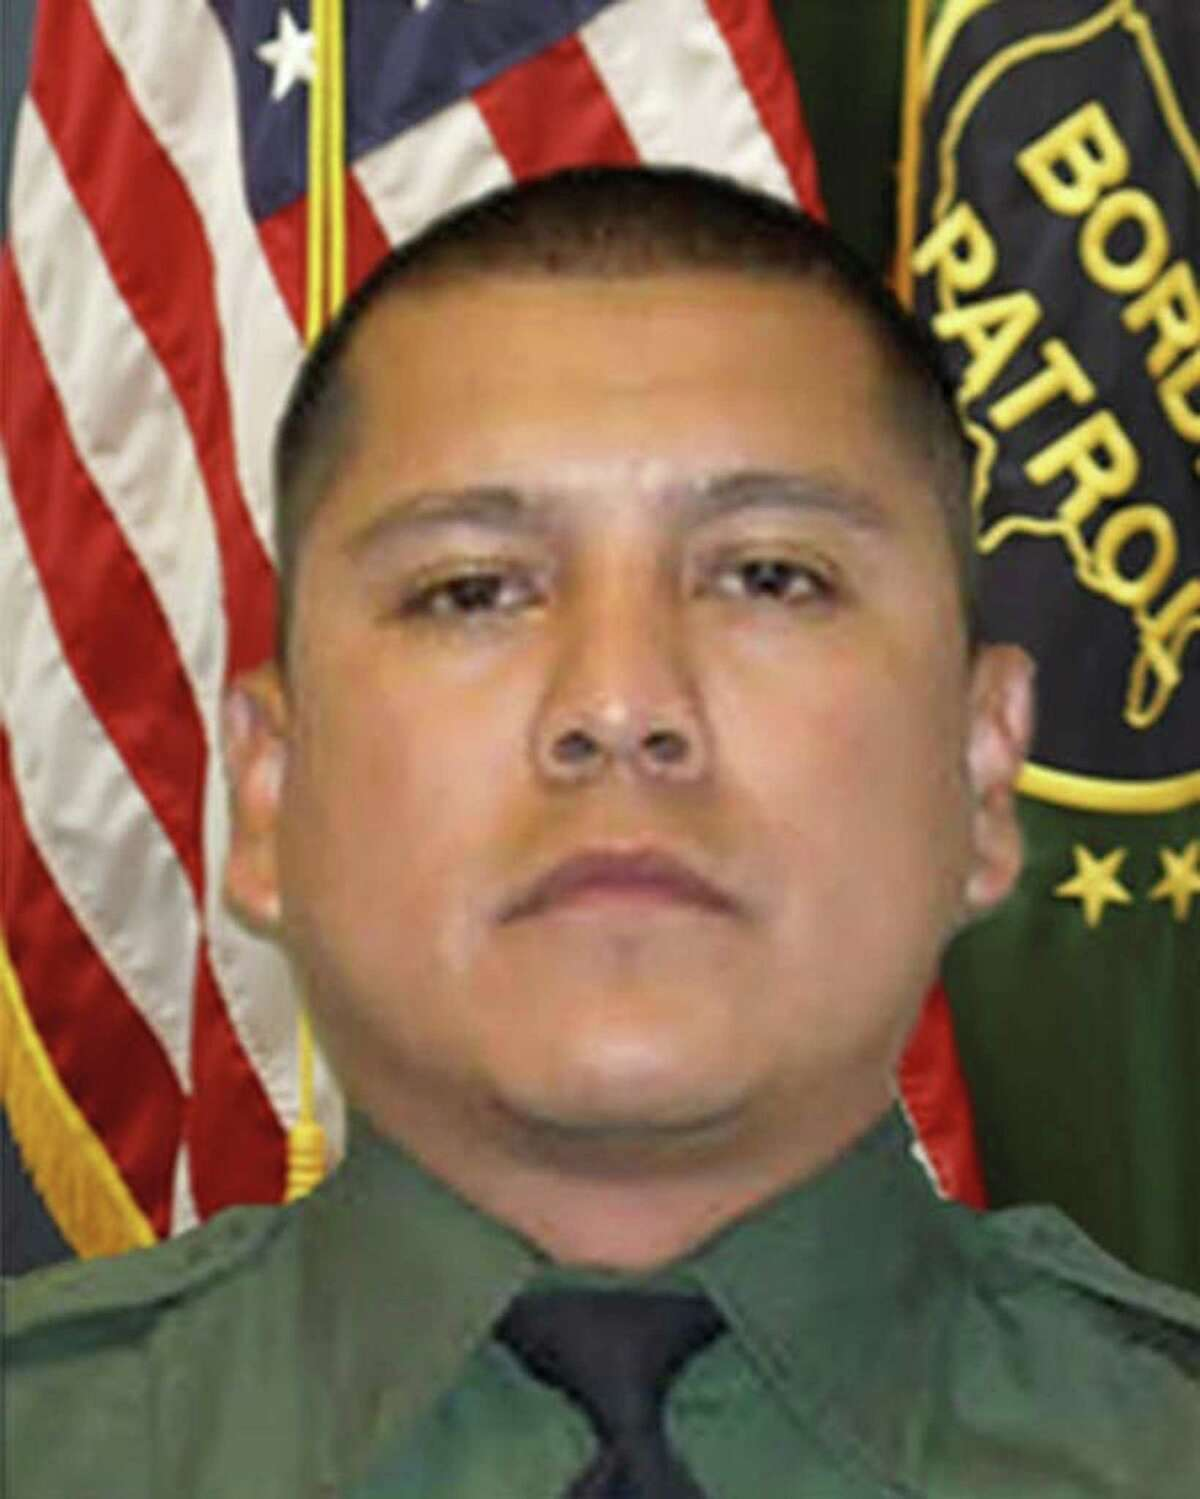 Rogelio Martinez died from injuries he sustained while he and his partner were responding to reports of unknown activity the night of Nov. 18 near Van Horn, a Texas town near the Mexico bordersoutheast of El Paso. .